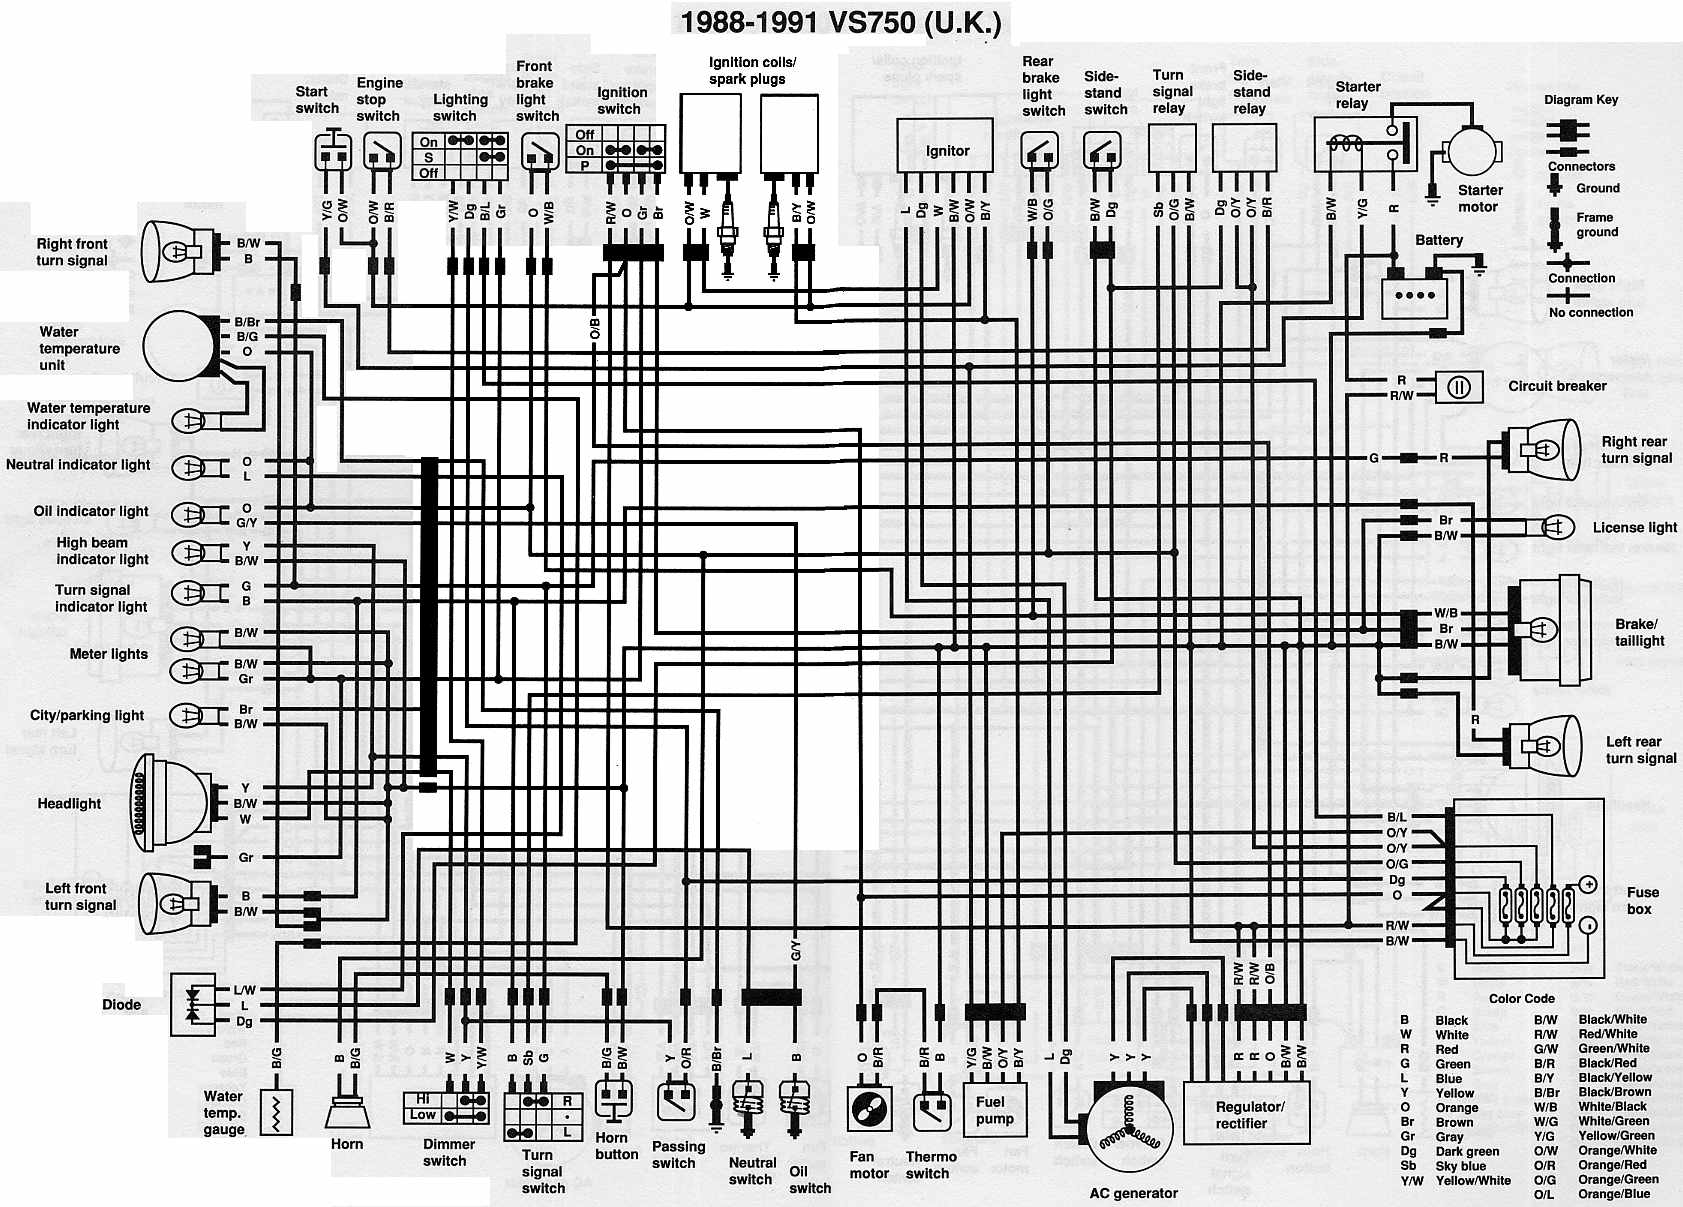 05 Z400 Wiring Diagram Custom Project Ltz 400 Cdi Suzuki Vz800 An650